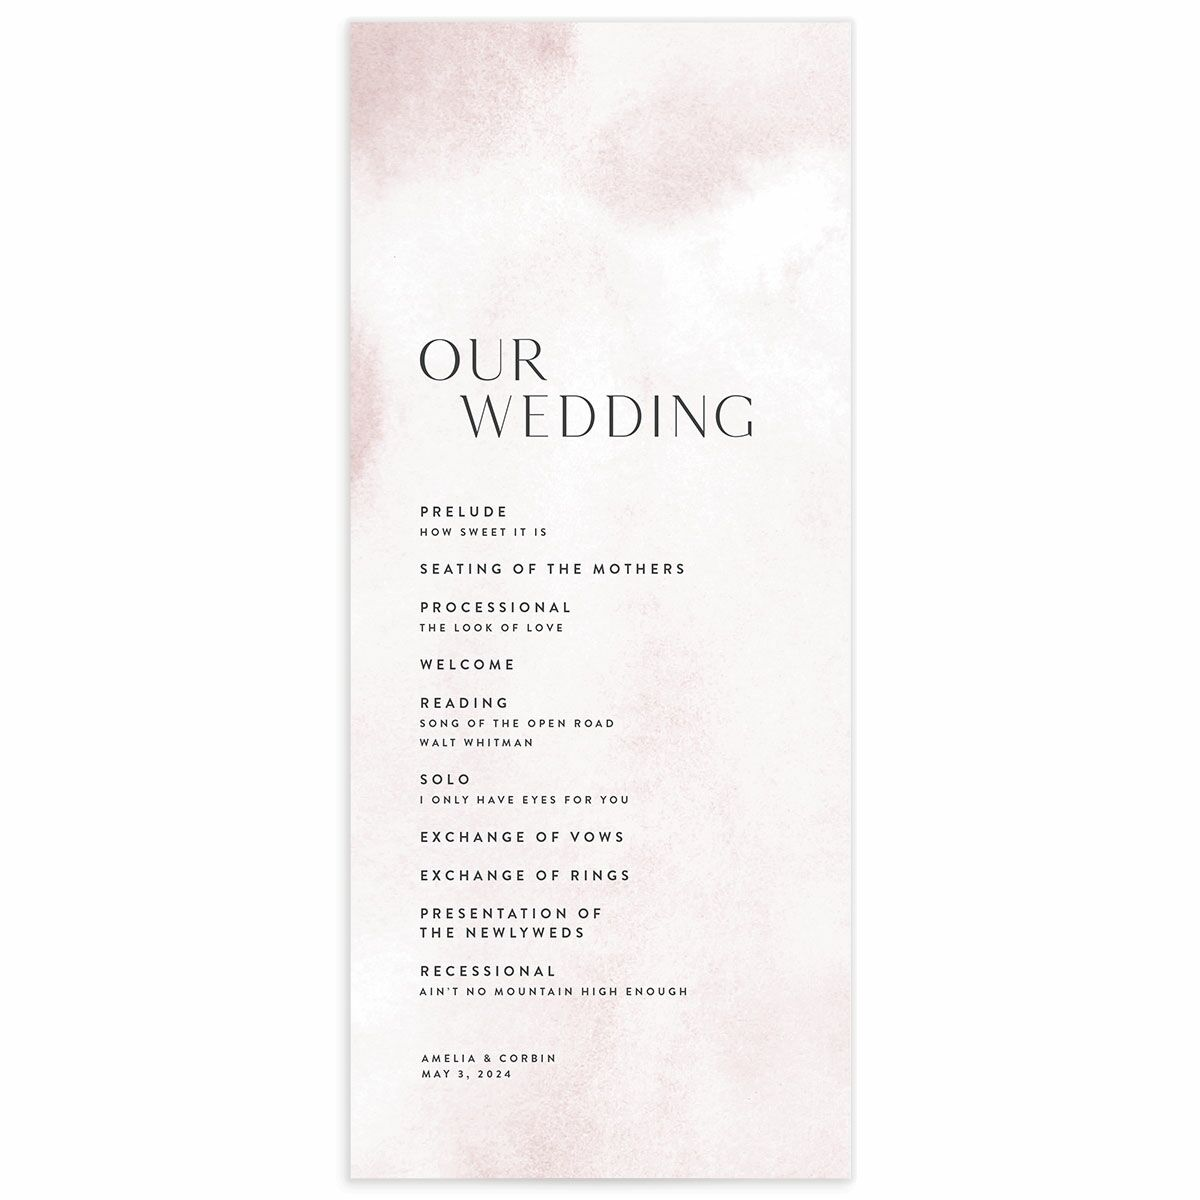 A Wedding Program from the Elegant Ethereal Collection